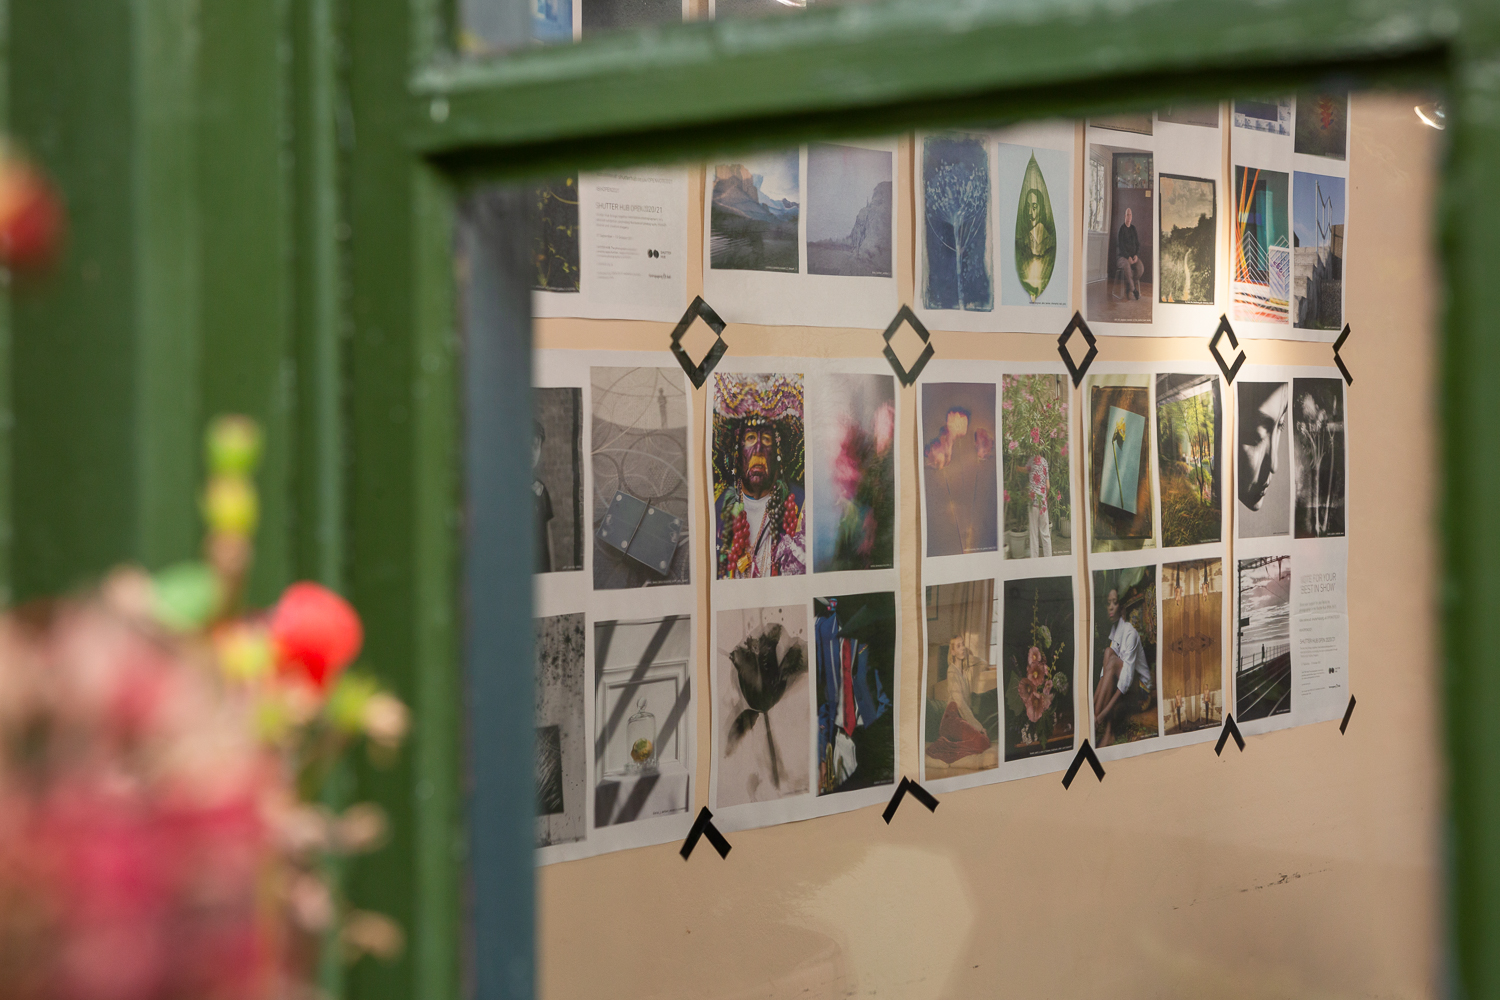 Photograph looking through a window into the Gallery Café at St. Margaret's House, showing an exhibition of photographs printed on newsprint,